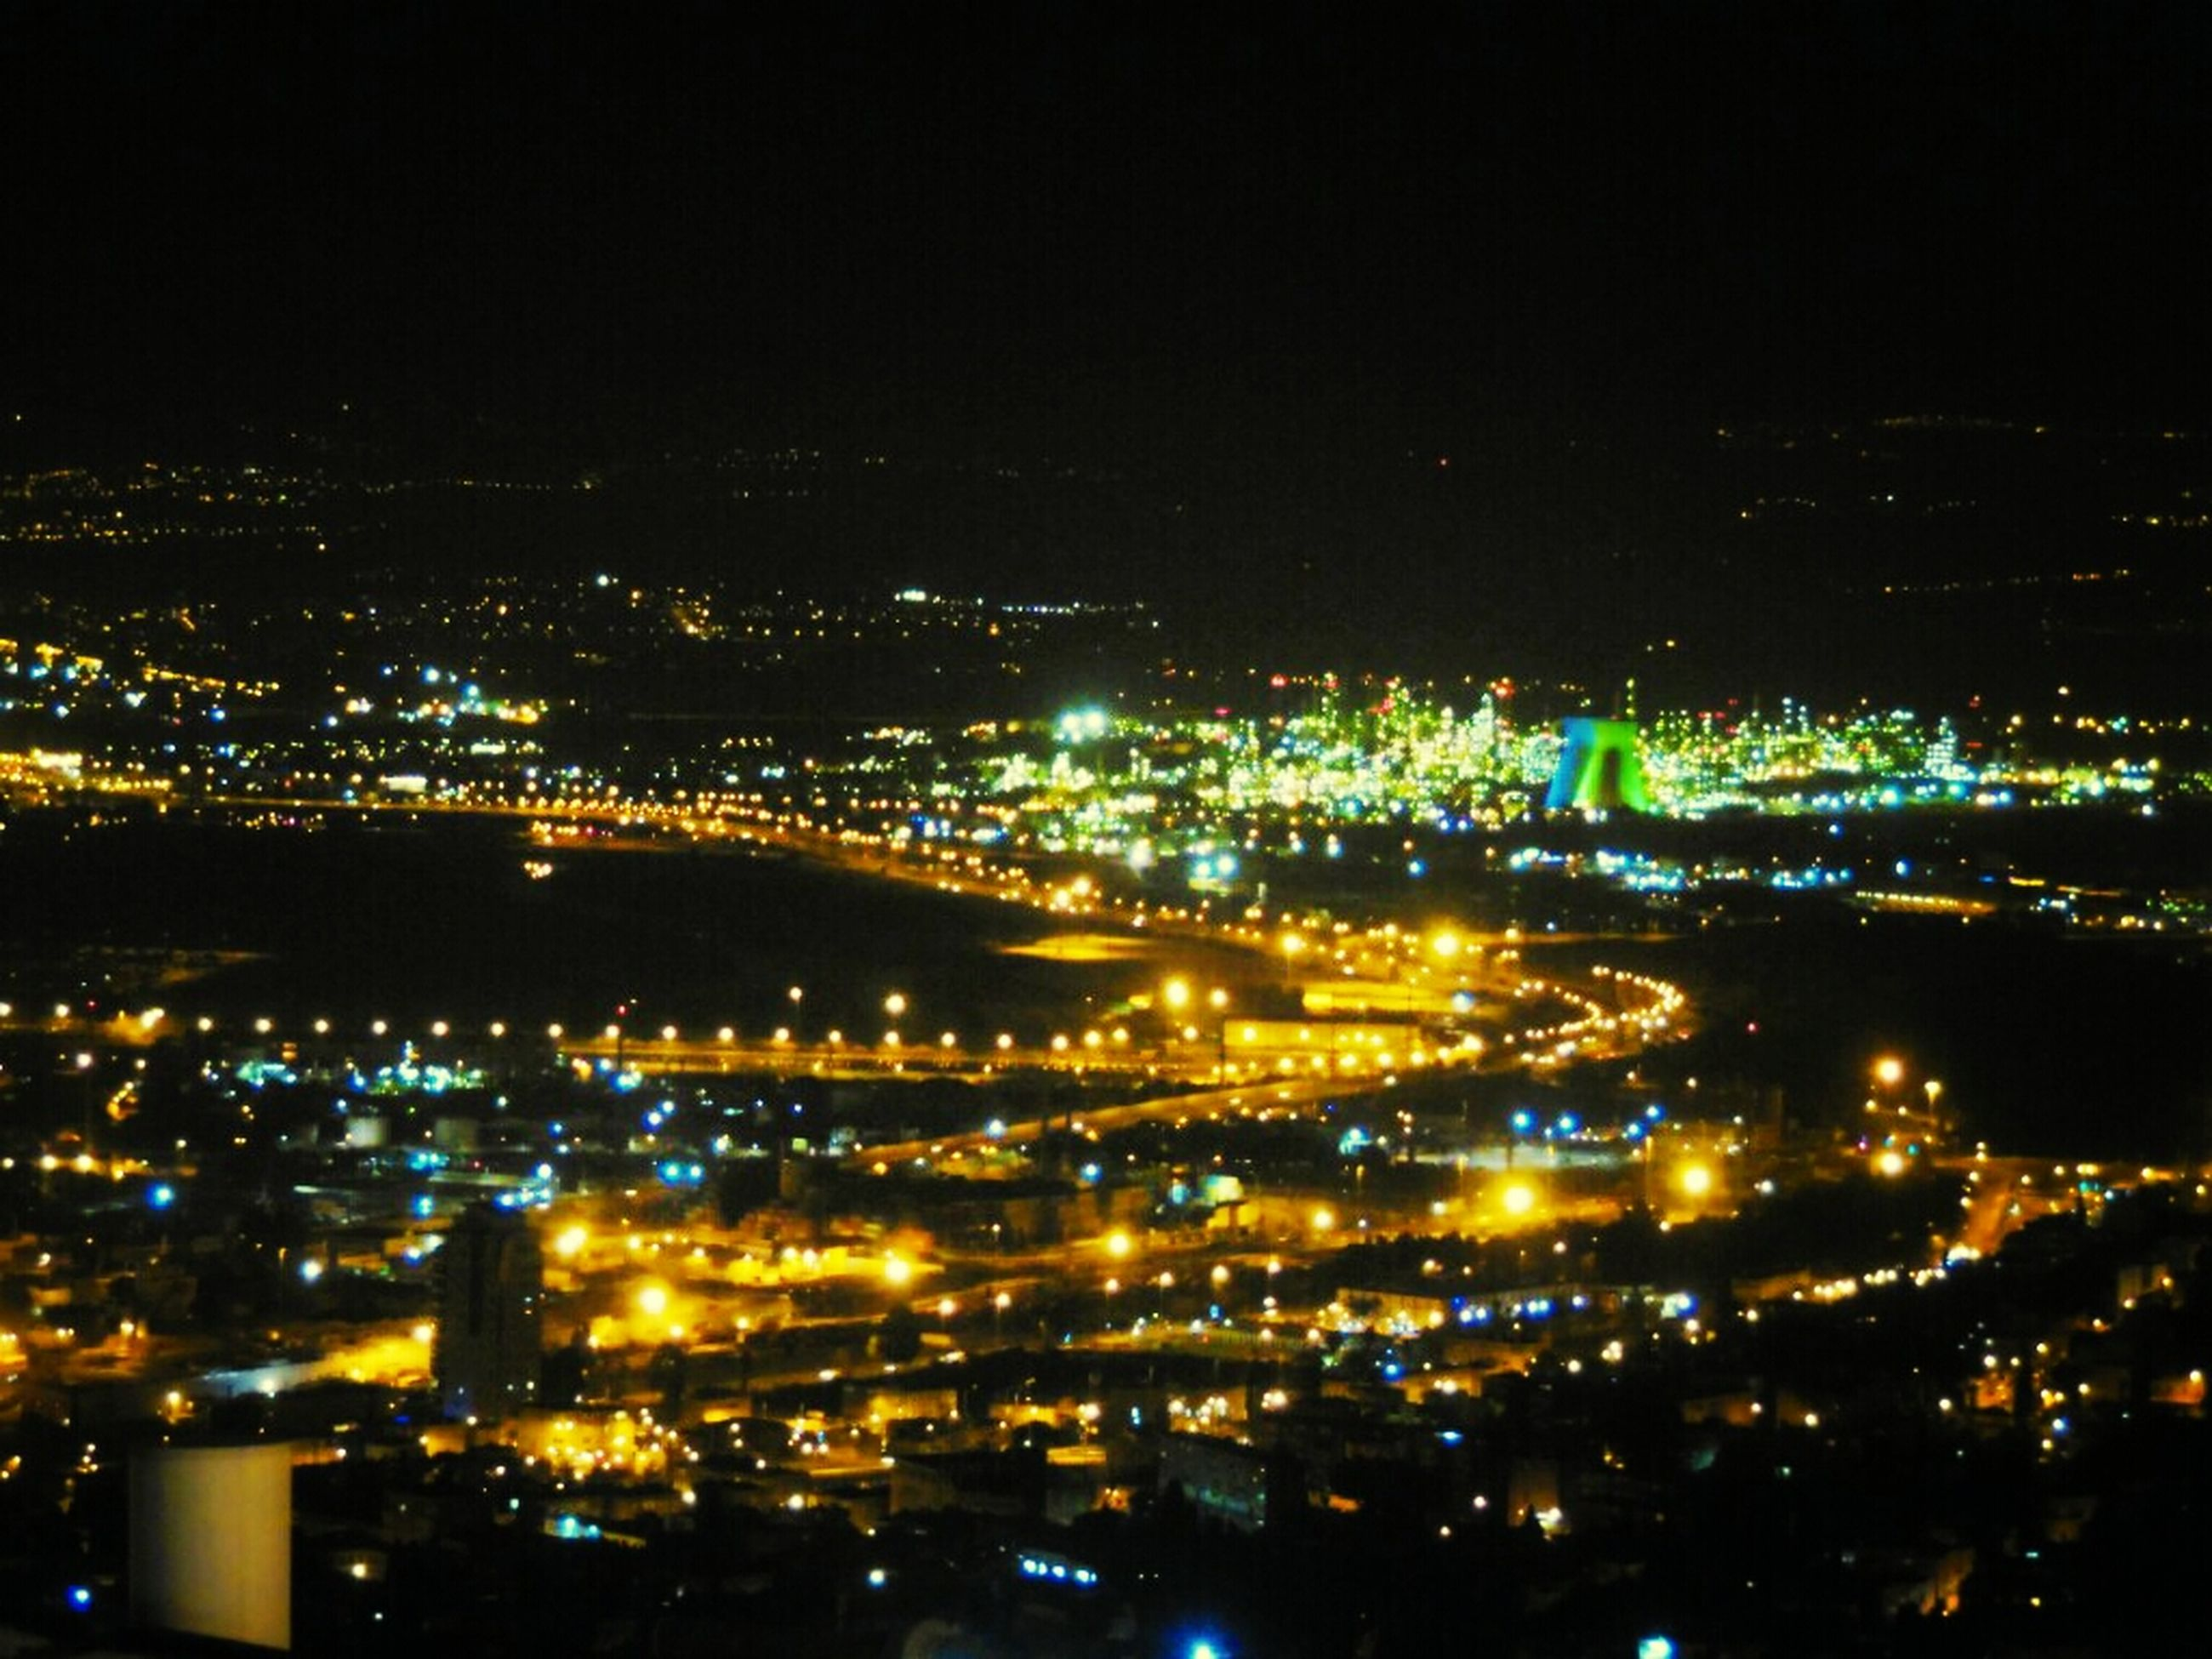 illuminated, night, cityscape, city, high angle view, aerial view, crowded, building exterior, architecture, built structure, city life, residential district, sky, residential building, outdoors, no people, road, residential structure, elevated view, landscape